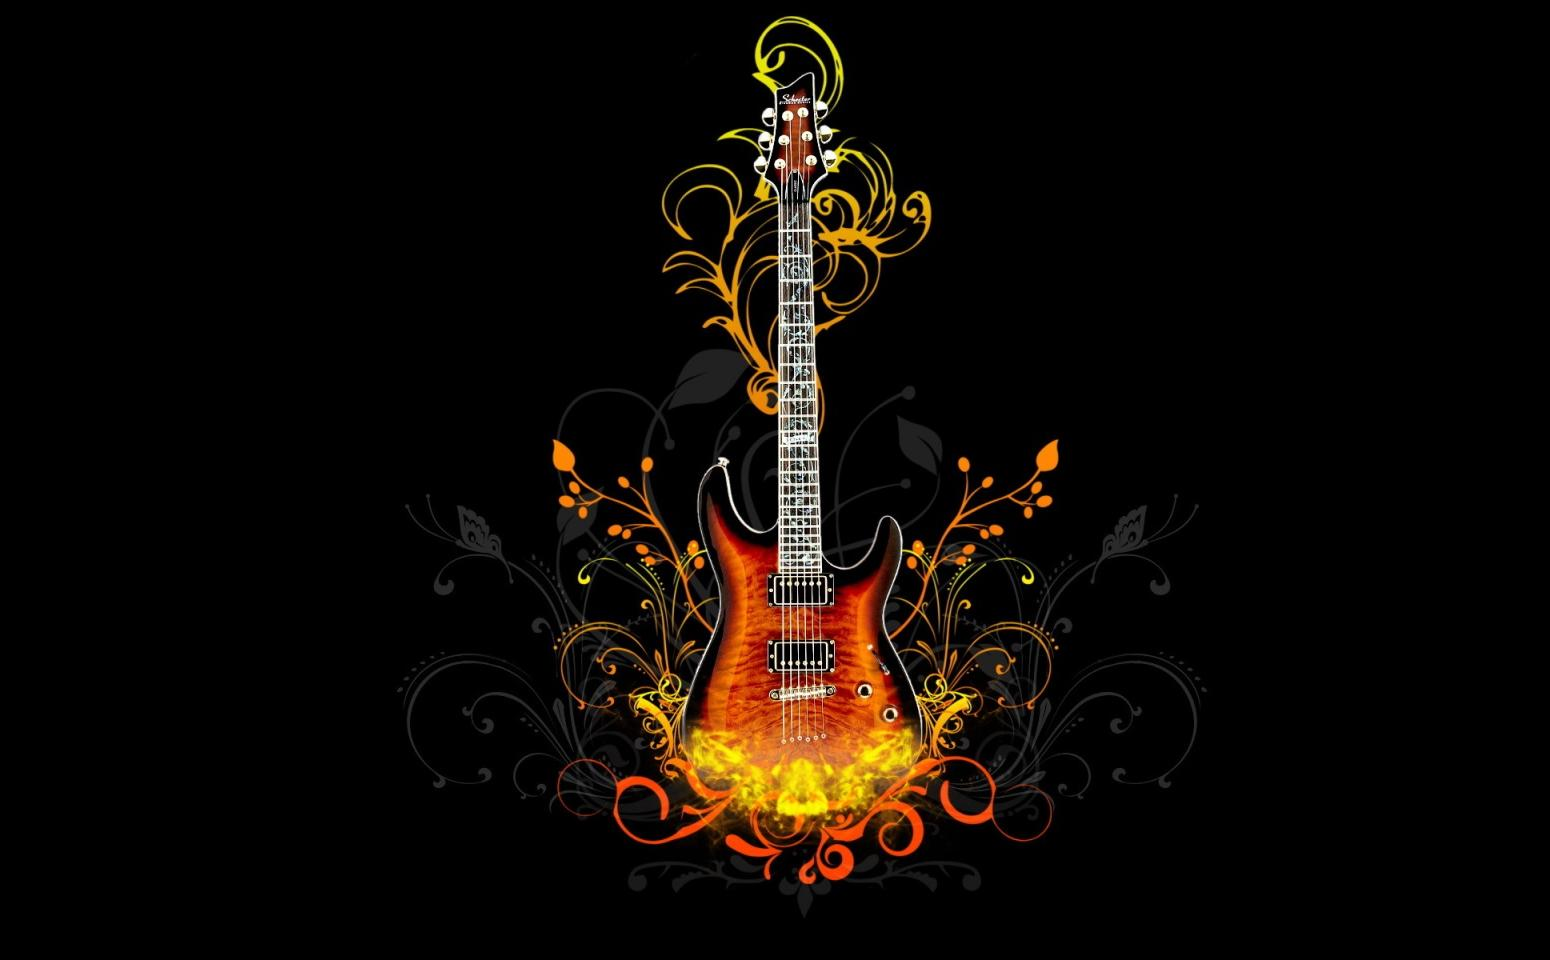 http://4.bp.blogspot.com/-uZEkcKlFQg4/TjnimayLIvI/AAAAAAAAASw/h4WCOaYK-Uk/s1600/Guitar_and_ribbons_1280x960+hd+wallpaper.JPG